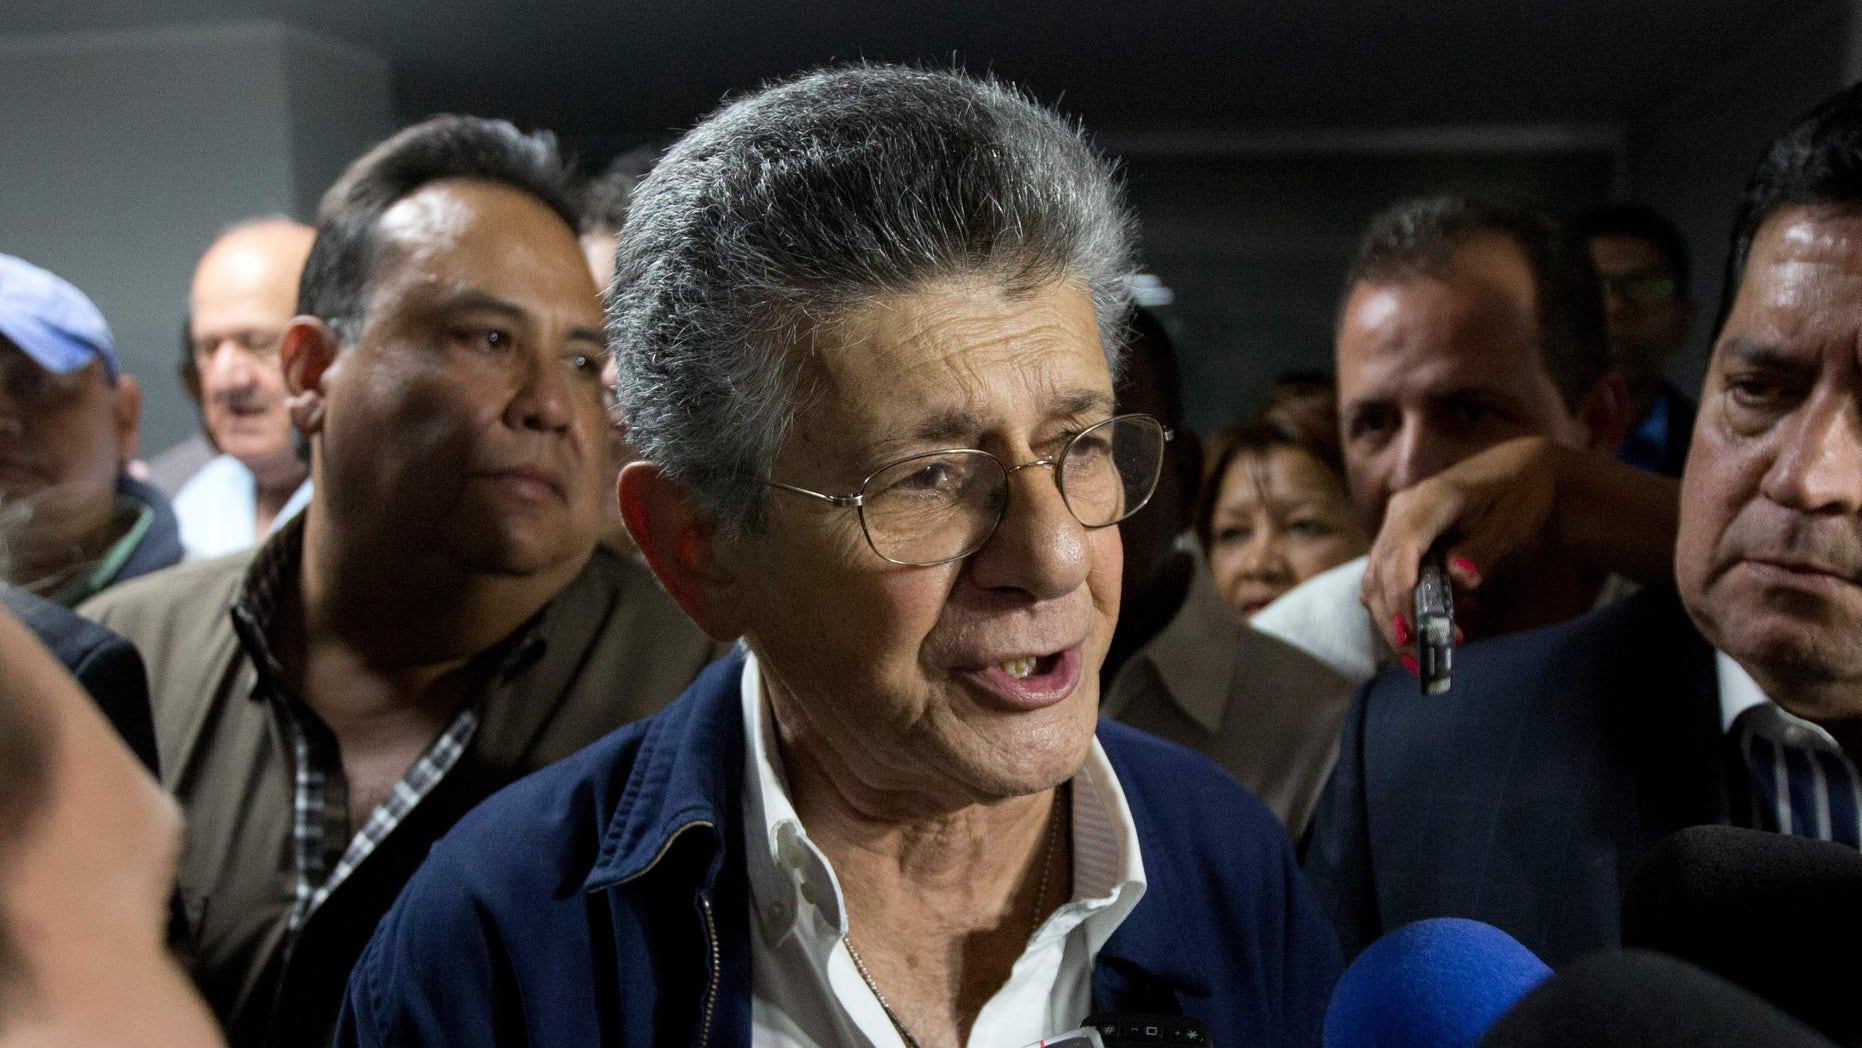 Congressmen Henry Ramos Allup speaks with media after he was elected as the Venezuela National Assembly's President in Caracas, Venezuela, Sunday, Jan. 3, 2016. Newly-elected opposition lawmakers voted in Ramos as National Assembly president Sunday. (AP Photo/Fernando Llano)